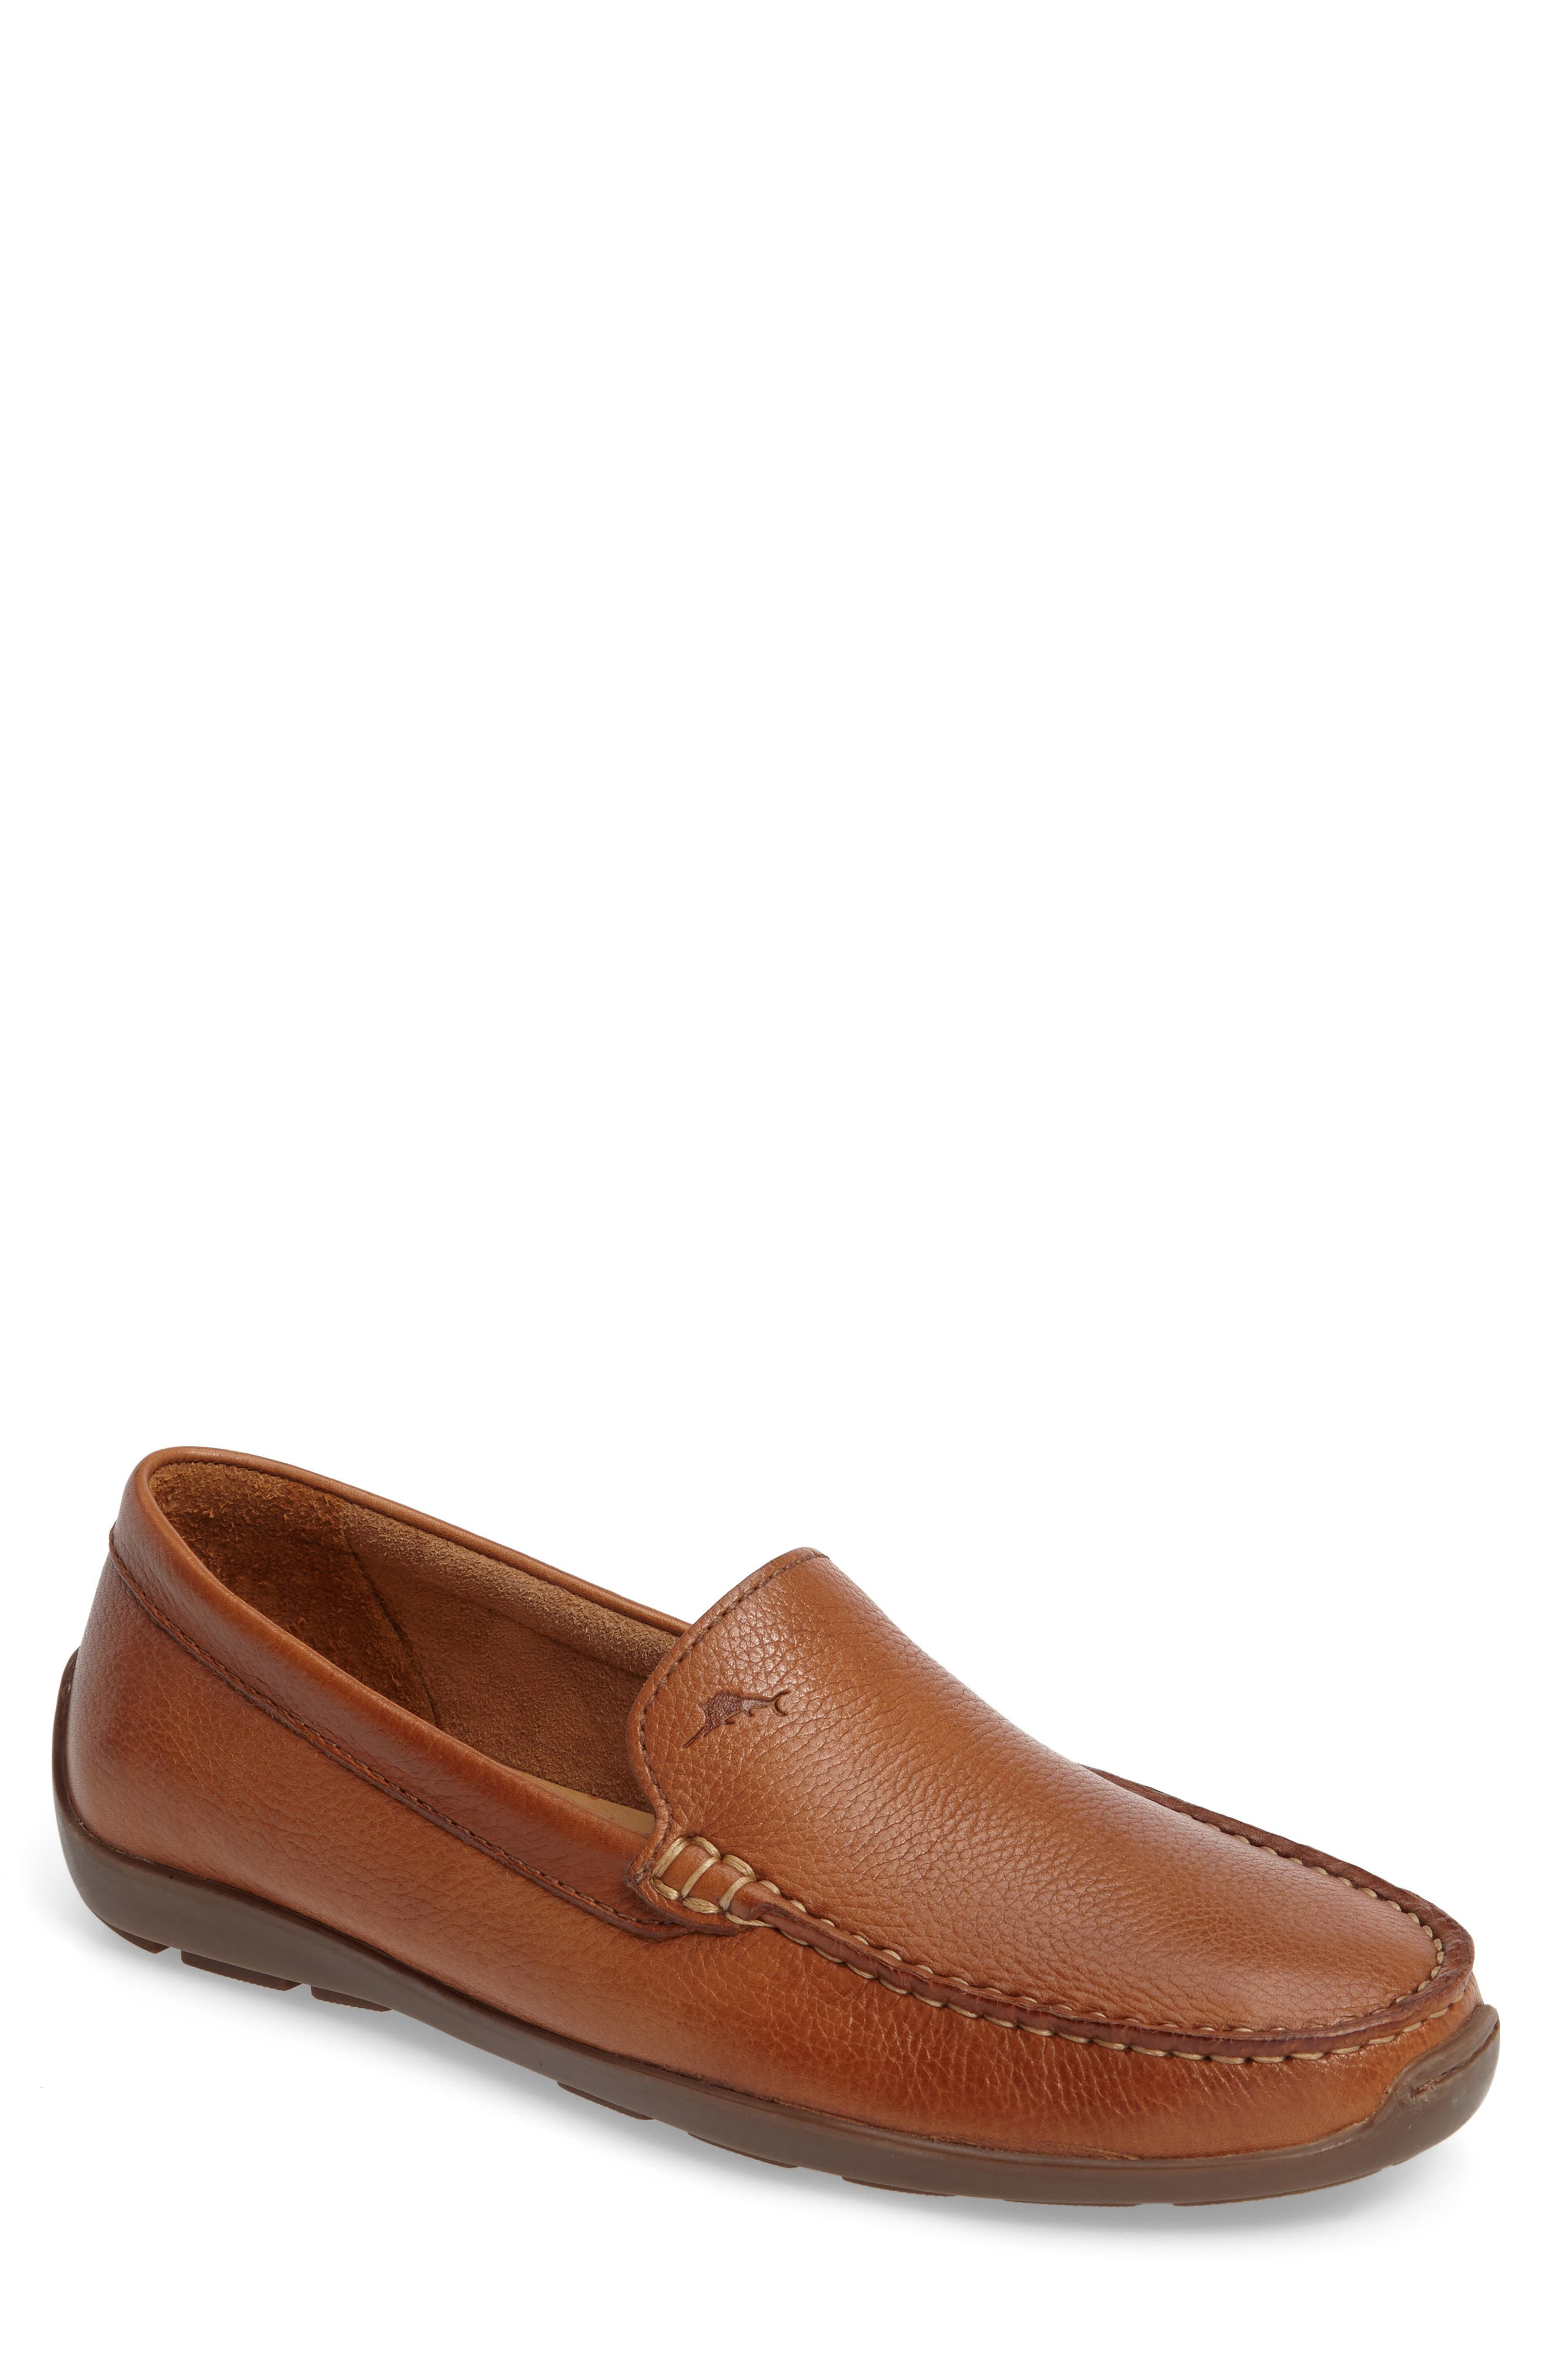 Orion Venetian Loafer,                             Main thumbnail 1, color,                             TAN LEATHER